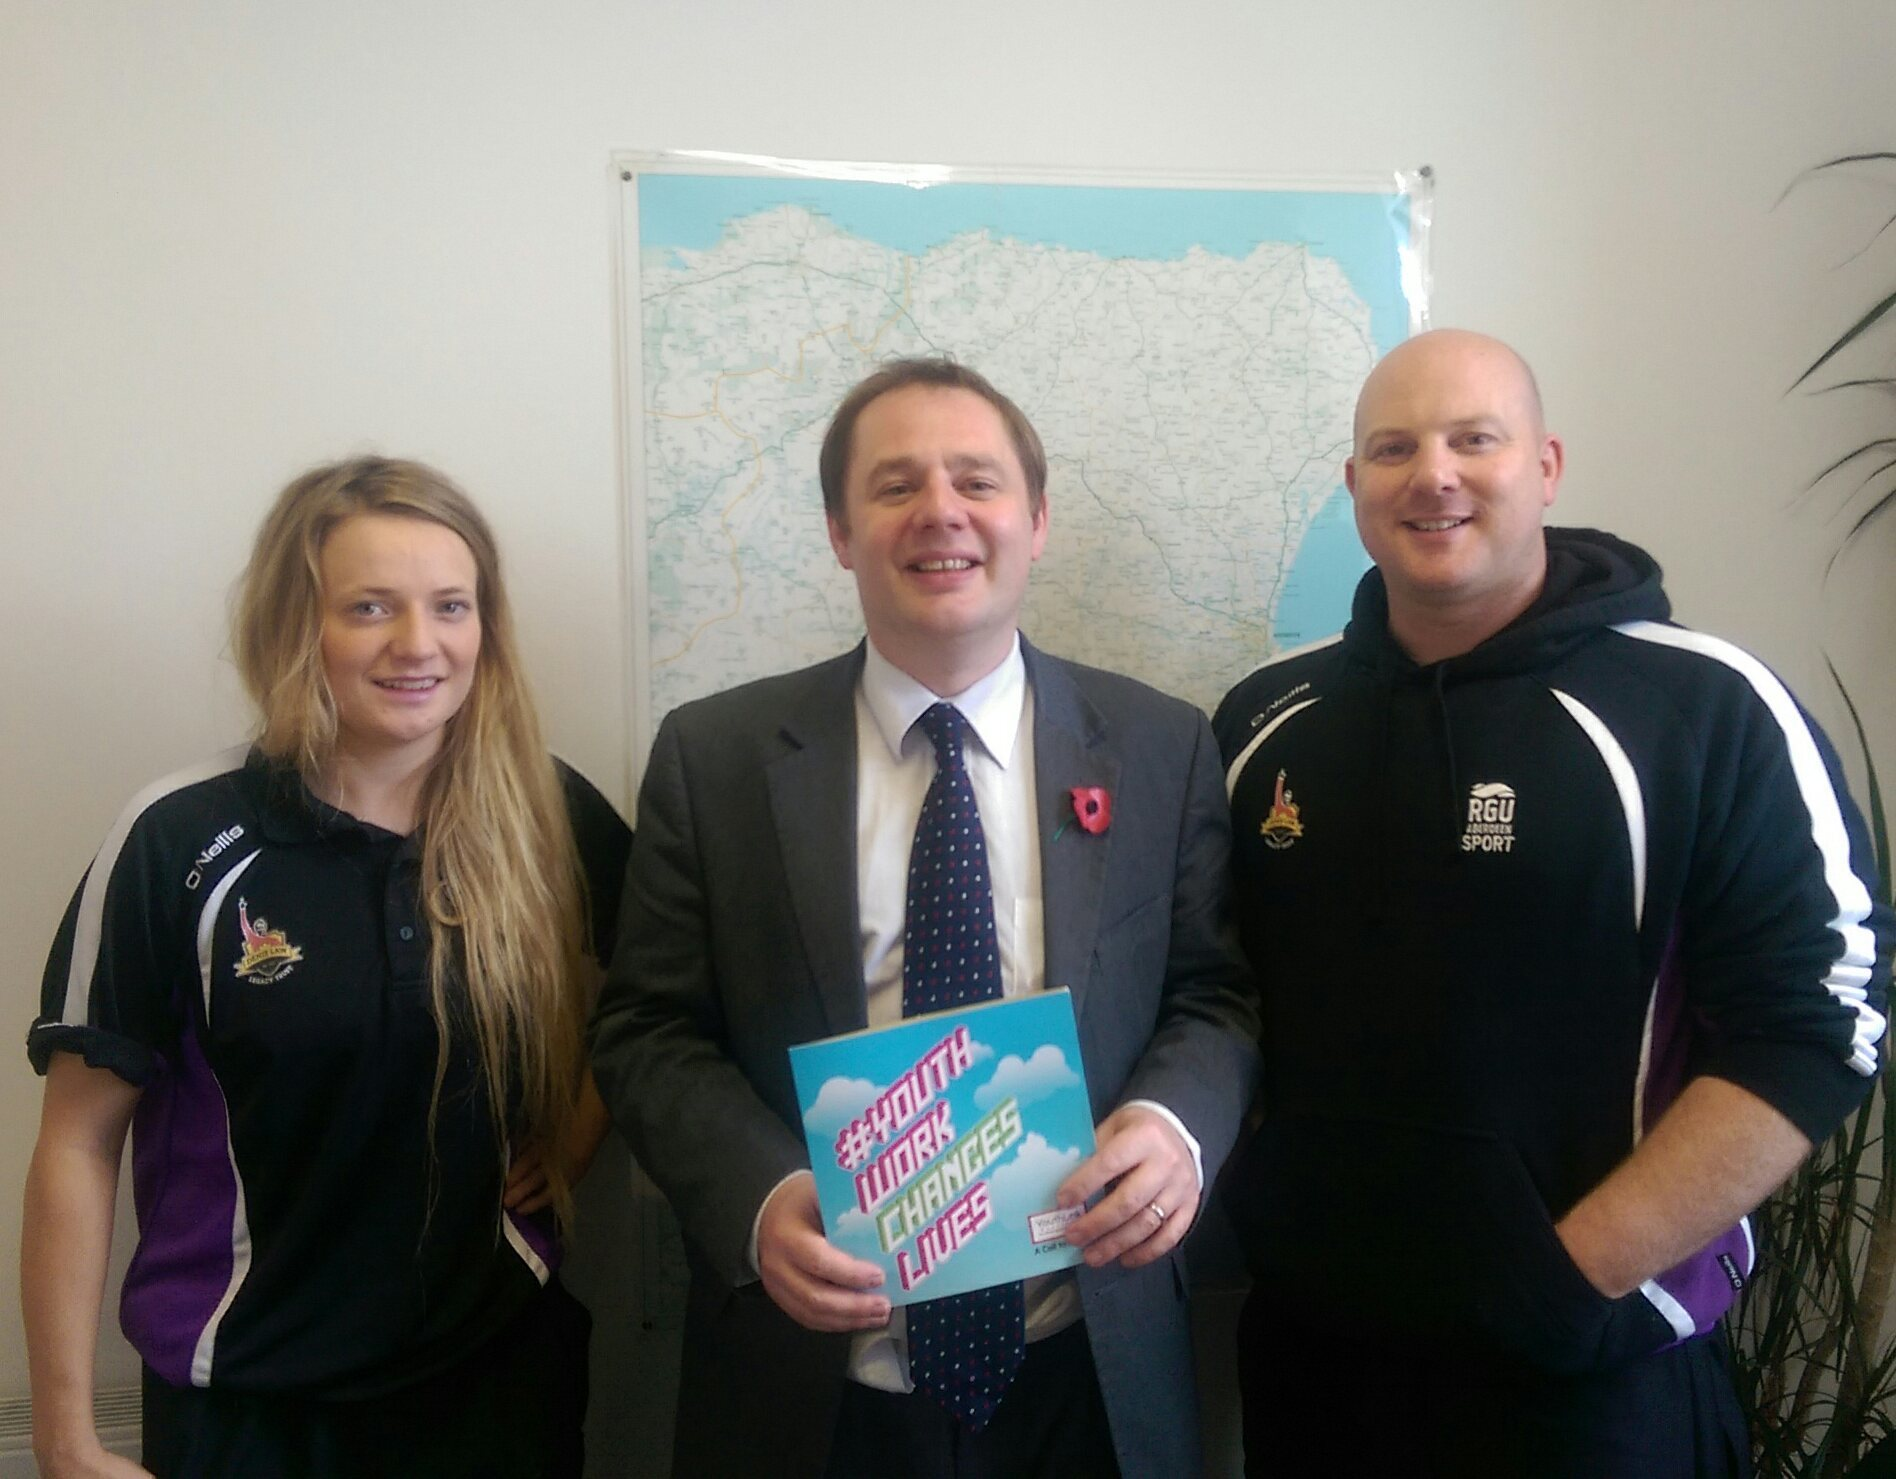 Streetsport's Mark Williams – Youth Worker/Development Officer and Hannah Clews – Young Person with Richard Baker